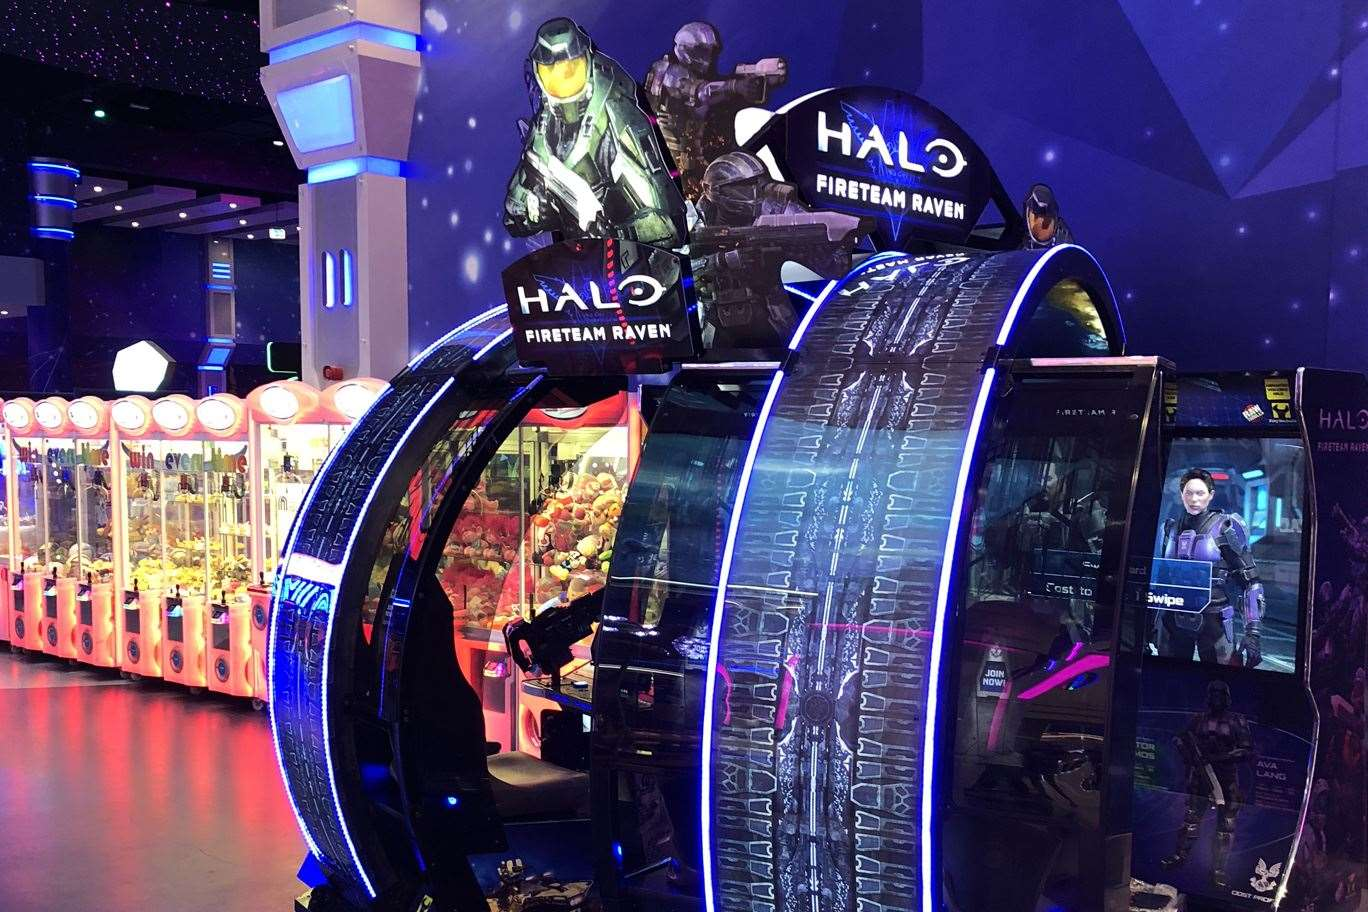 Halo: Fireteam Raven game at Magic Planet Mall of the Emirates